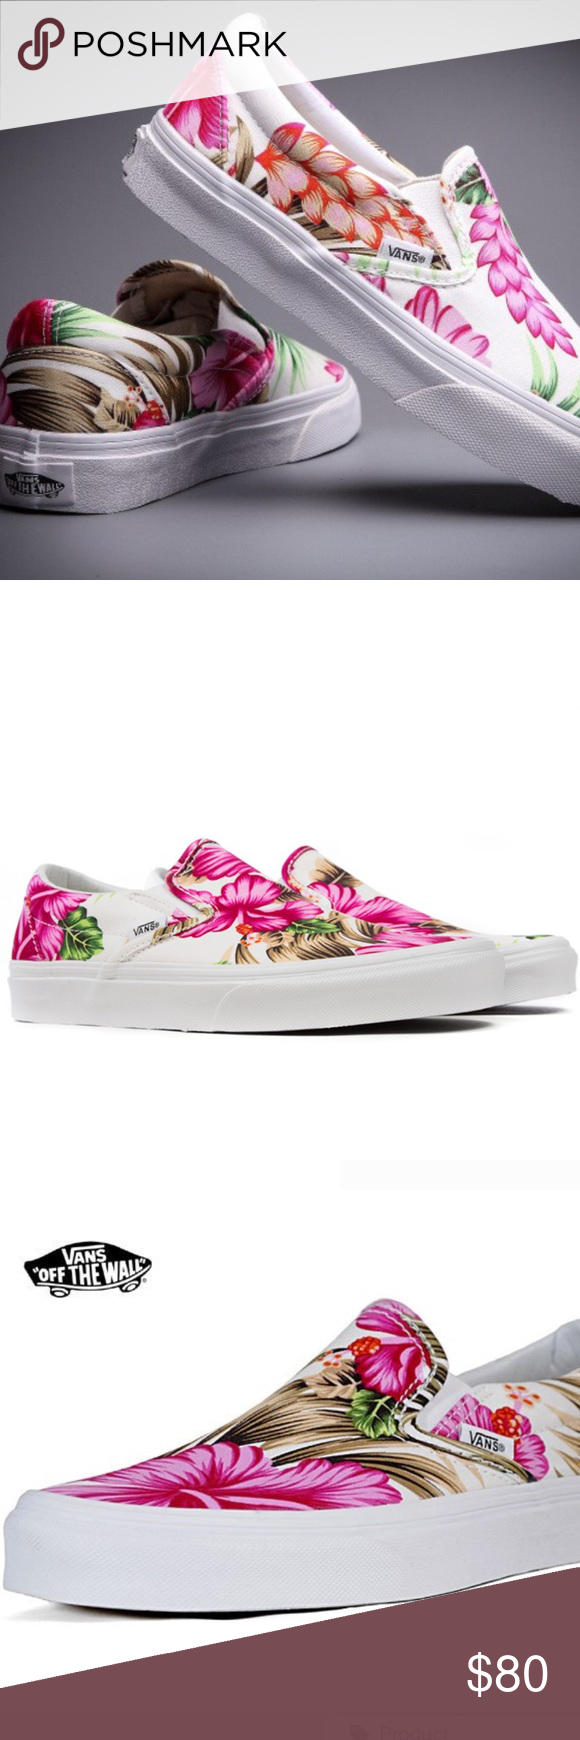 e05960c6e40d90 Vans Off The Wall Hawaiian Floral Pink tropical 🌺 Vans Off The Wall  Hawaiian Floral Pink tropical classic slip on skater shoe beach summer  Totally cute ...